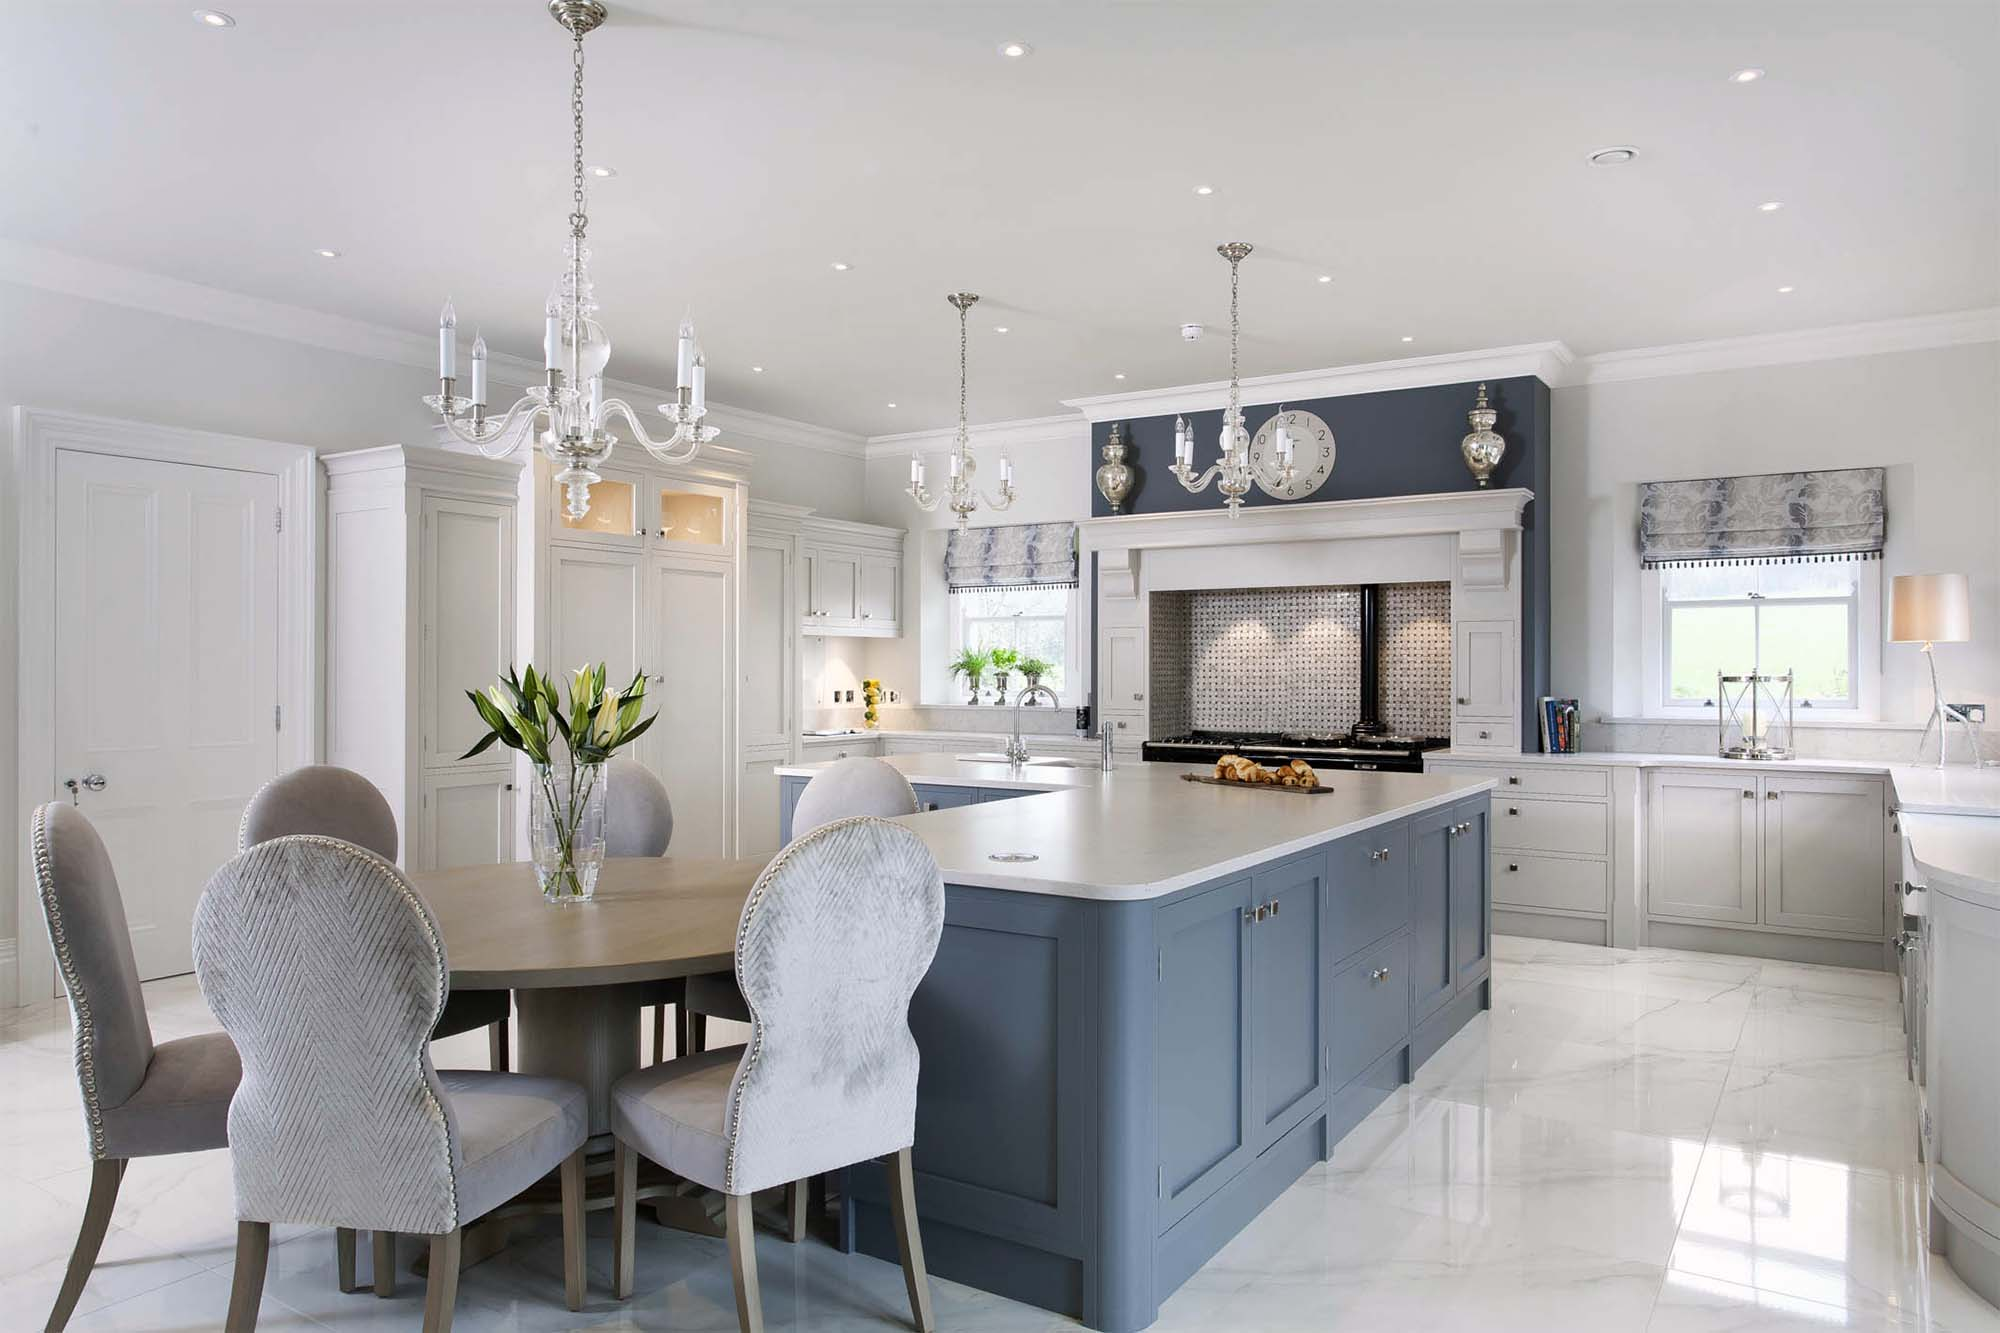 luxury kitchen design ideas white and blue cabinets Gambrick custom home builder NJ